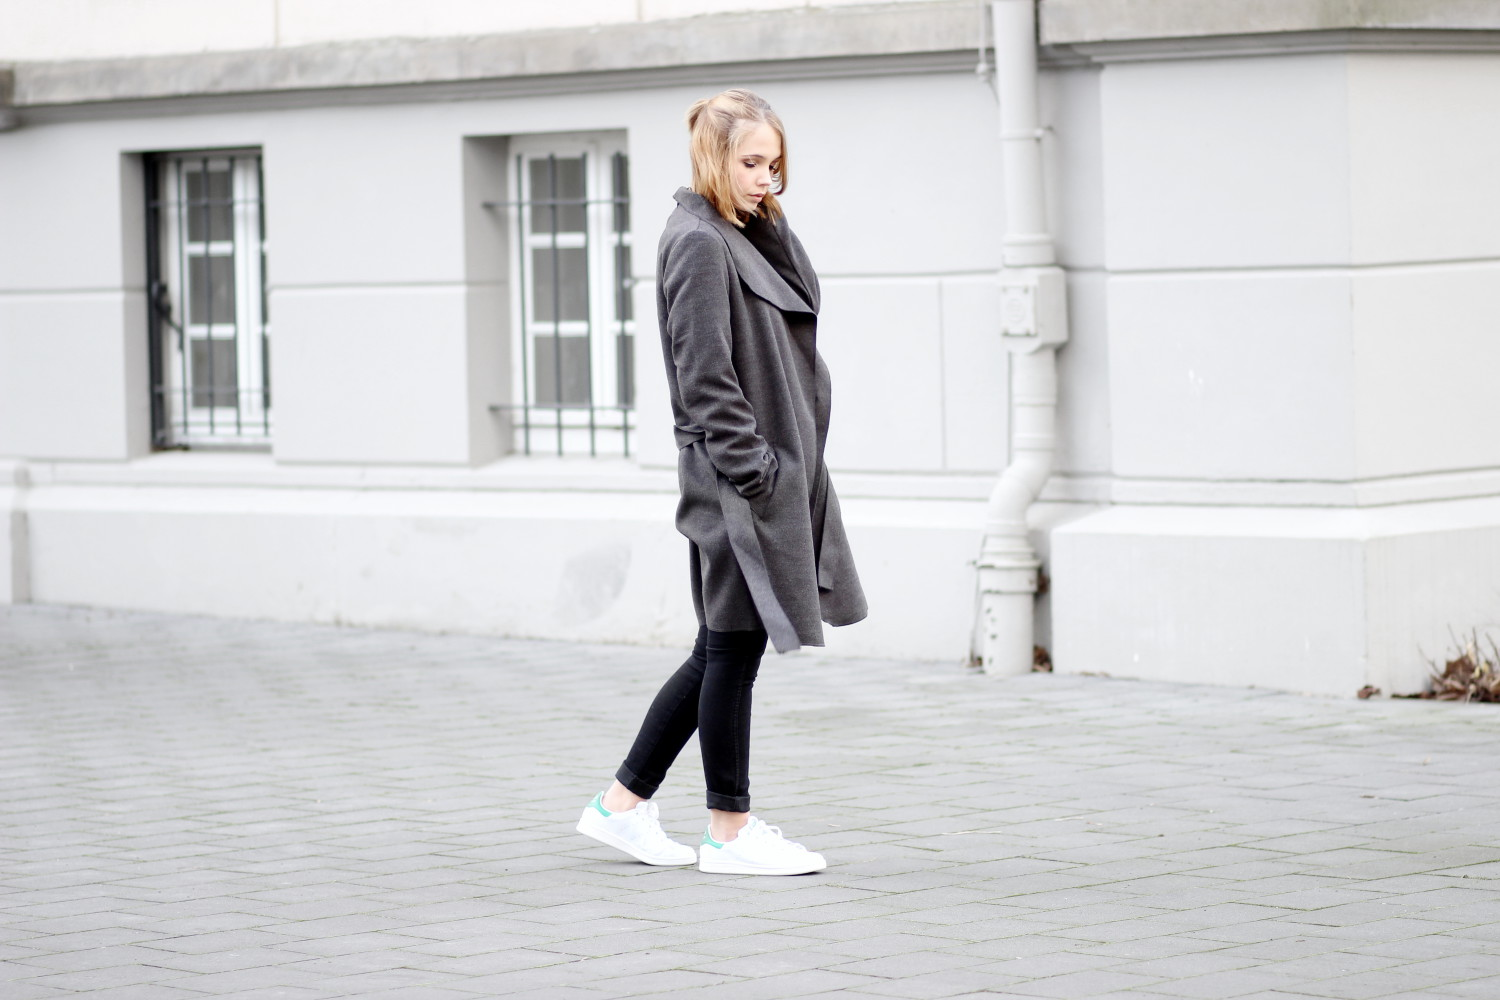 bezauberndenana-fashionblog-streetstyle-lässiges-outfit-winter-about-you (2)